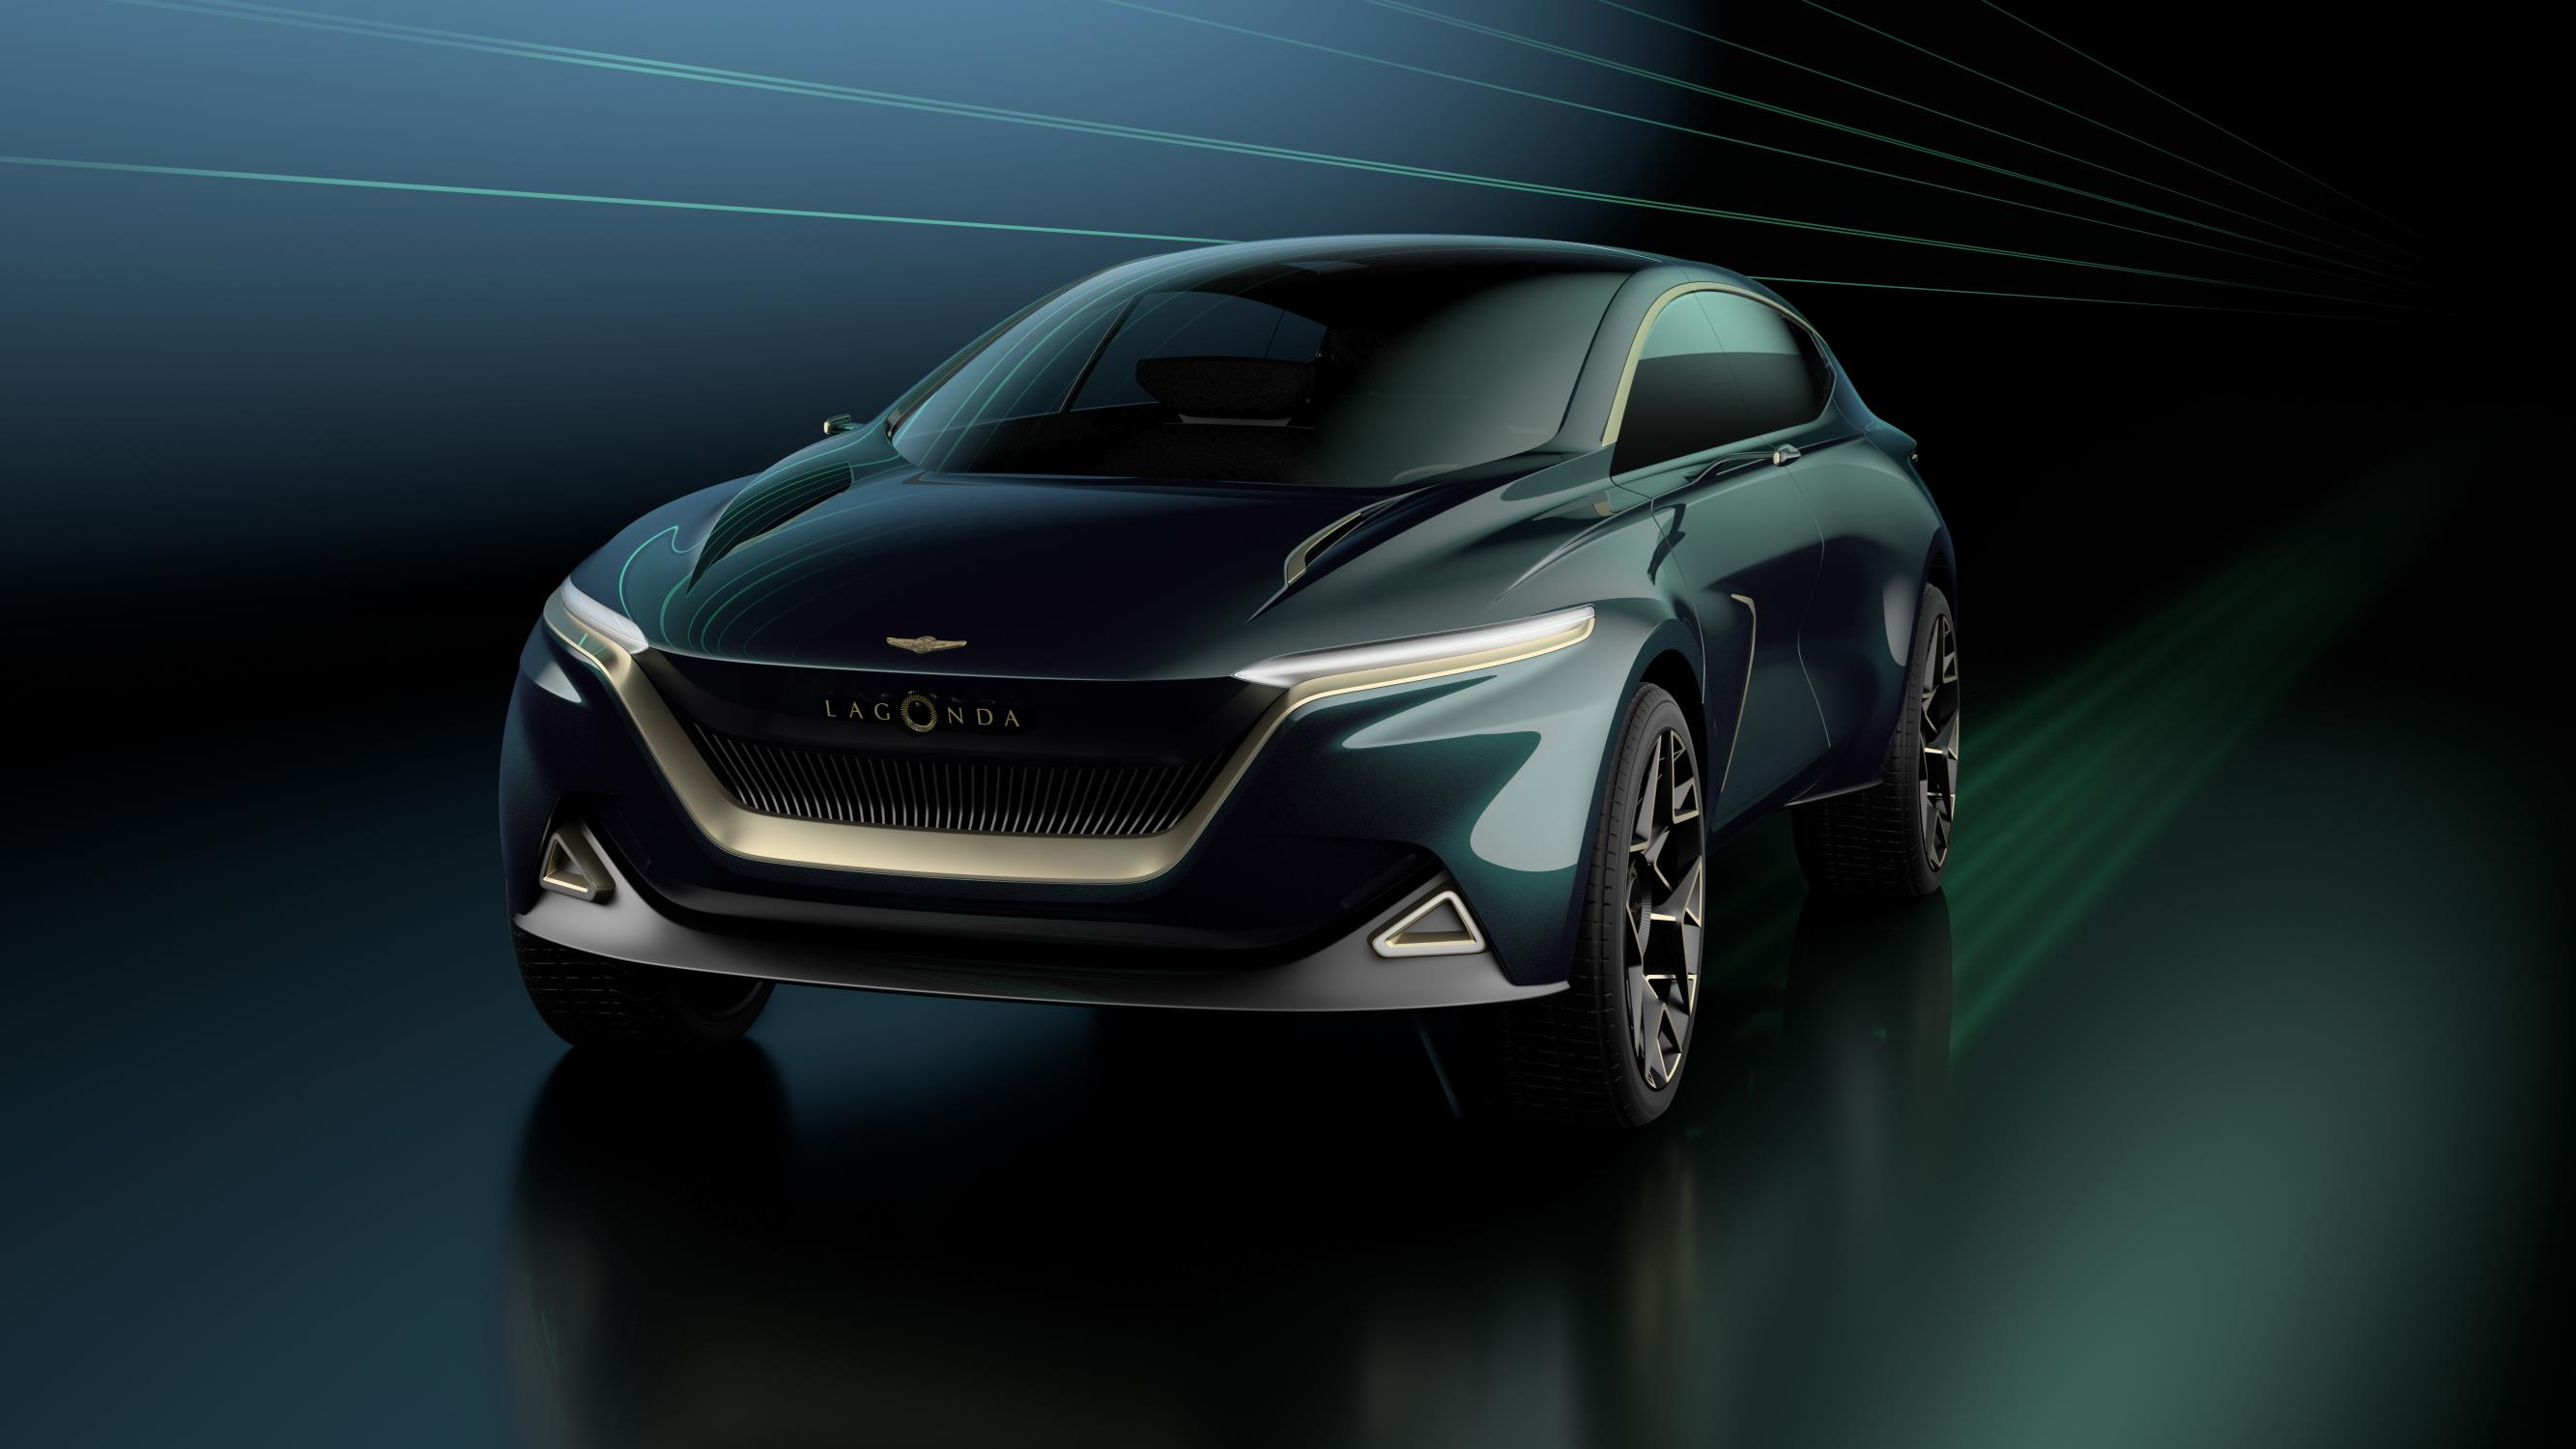 Aston Martin Lagonda All-Terrain Concept Officially